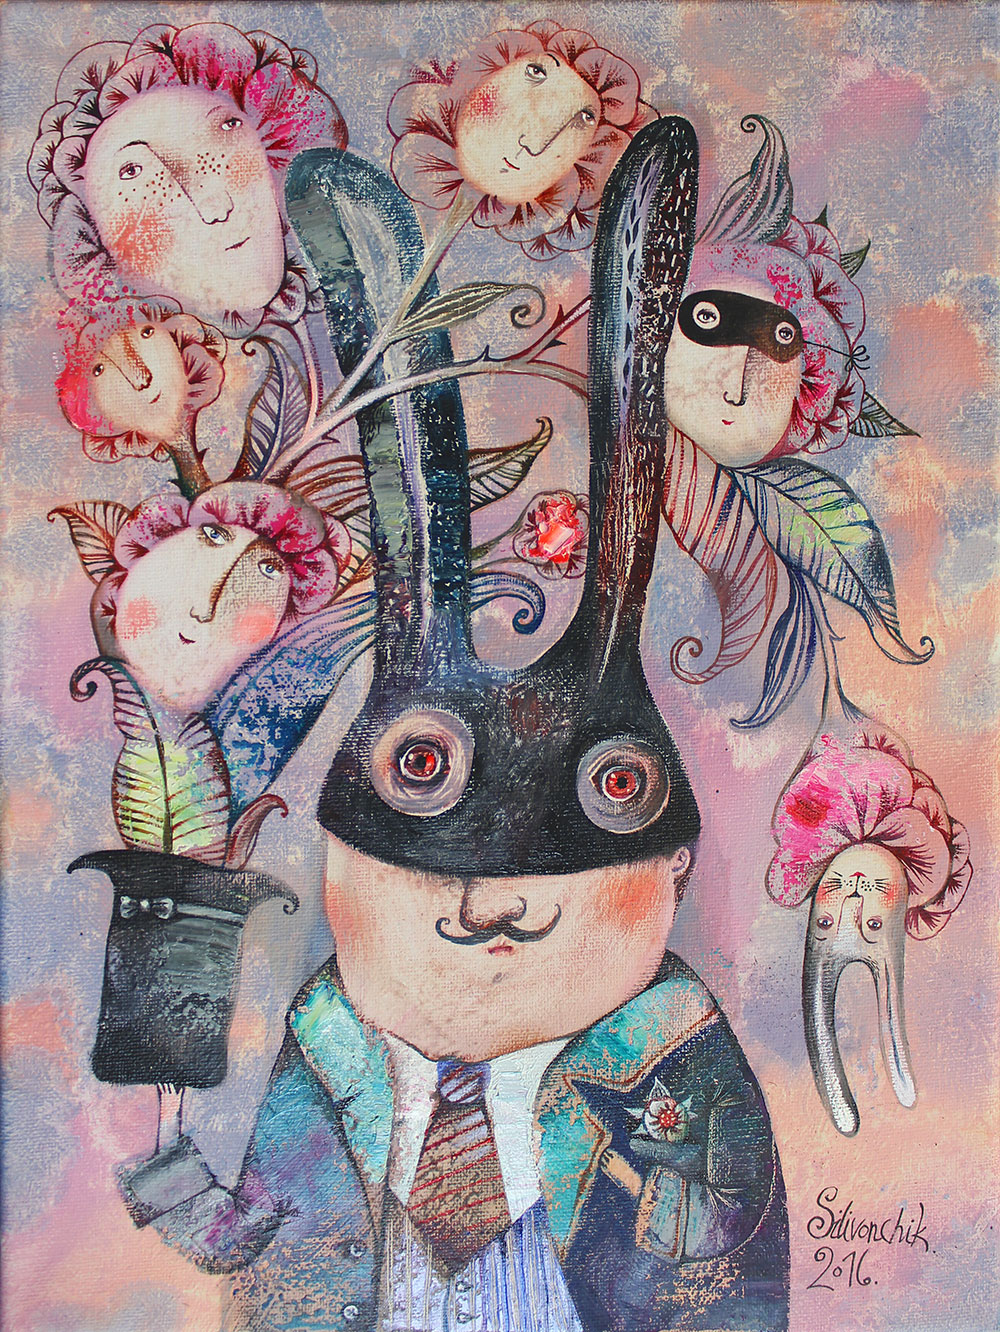 Magic Rabbit (Alice in Wonderland), 2016, Oil on Canvas, 16 x 12 in(40 x 30 cm)